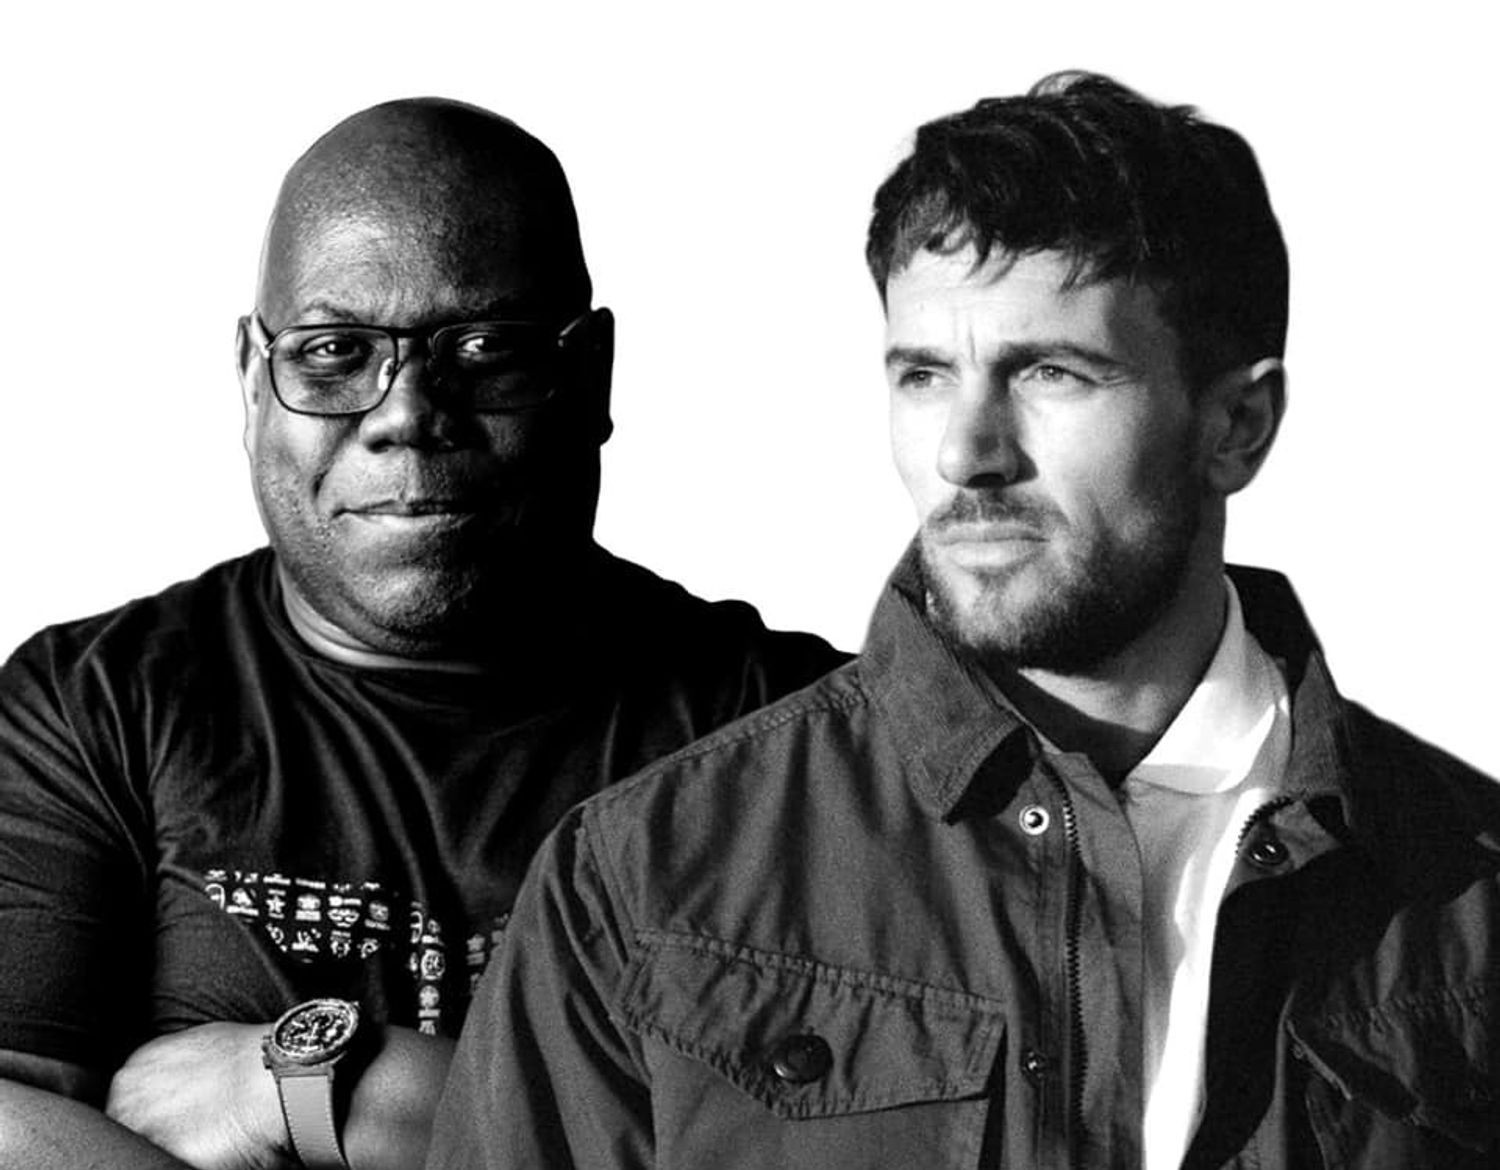 Carl Cox et Franky Wah - We Are One